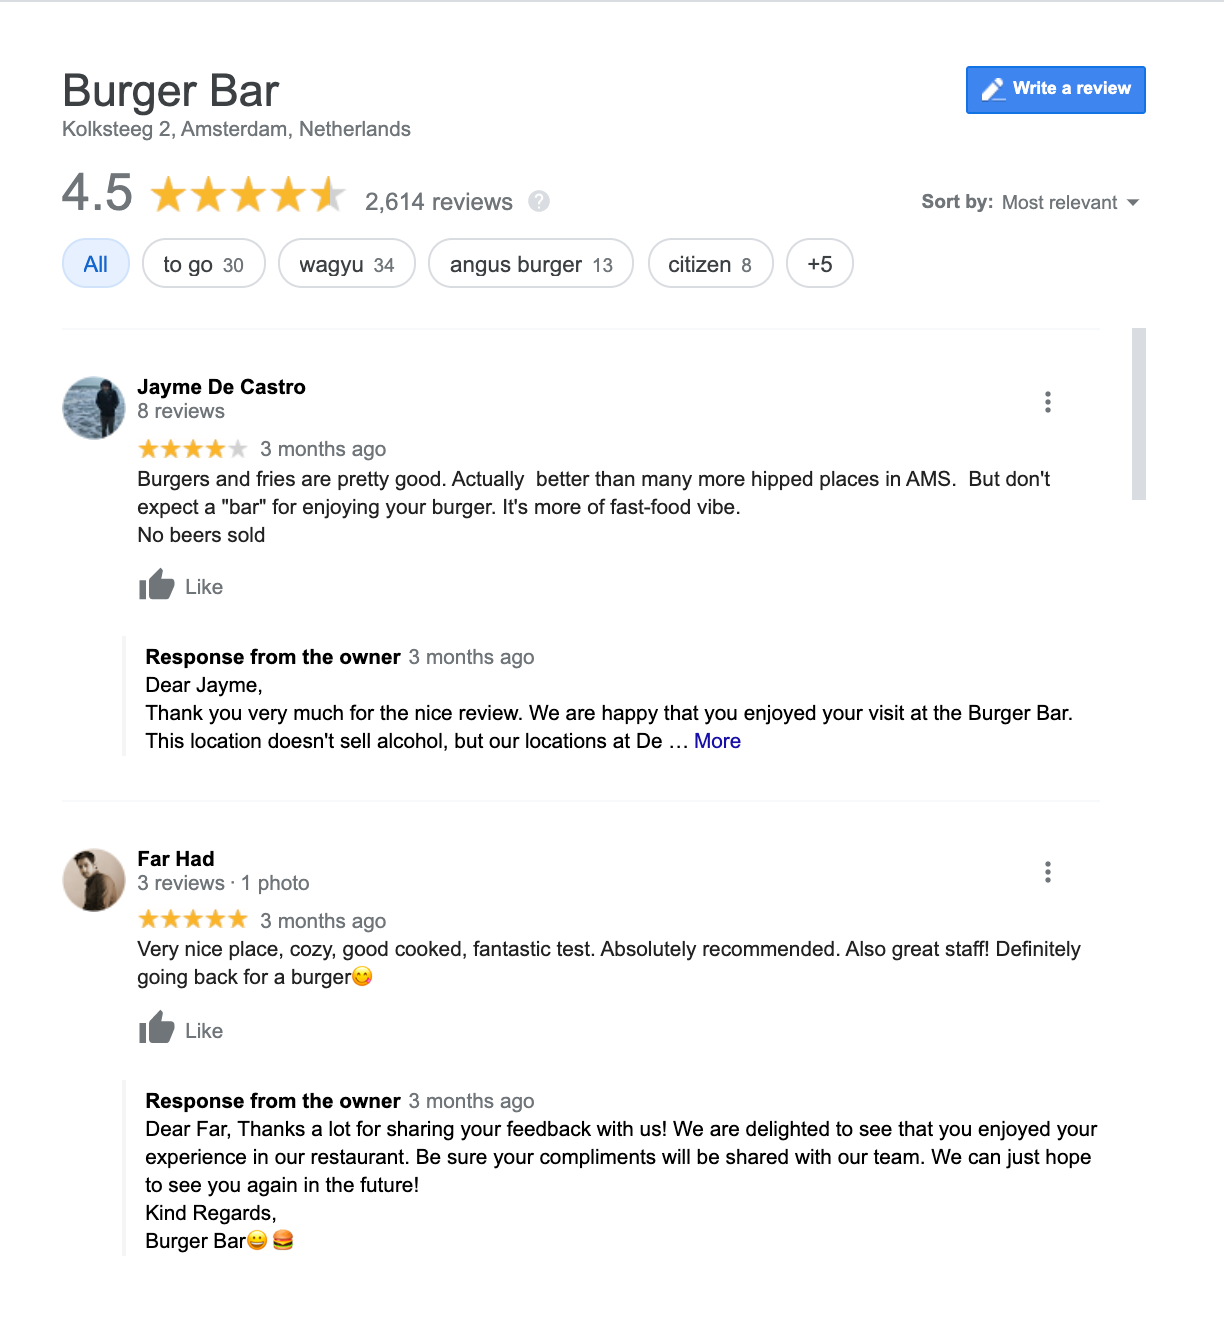 Reviews of burger joint in Amsterdam